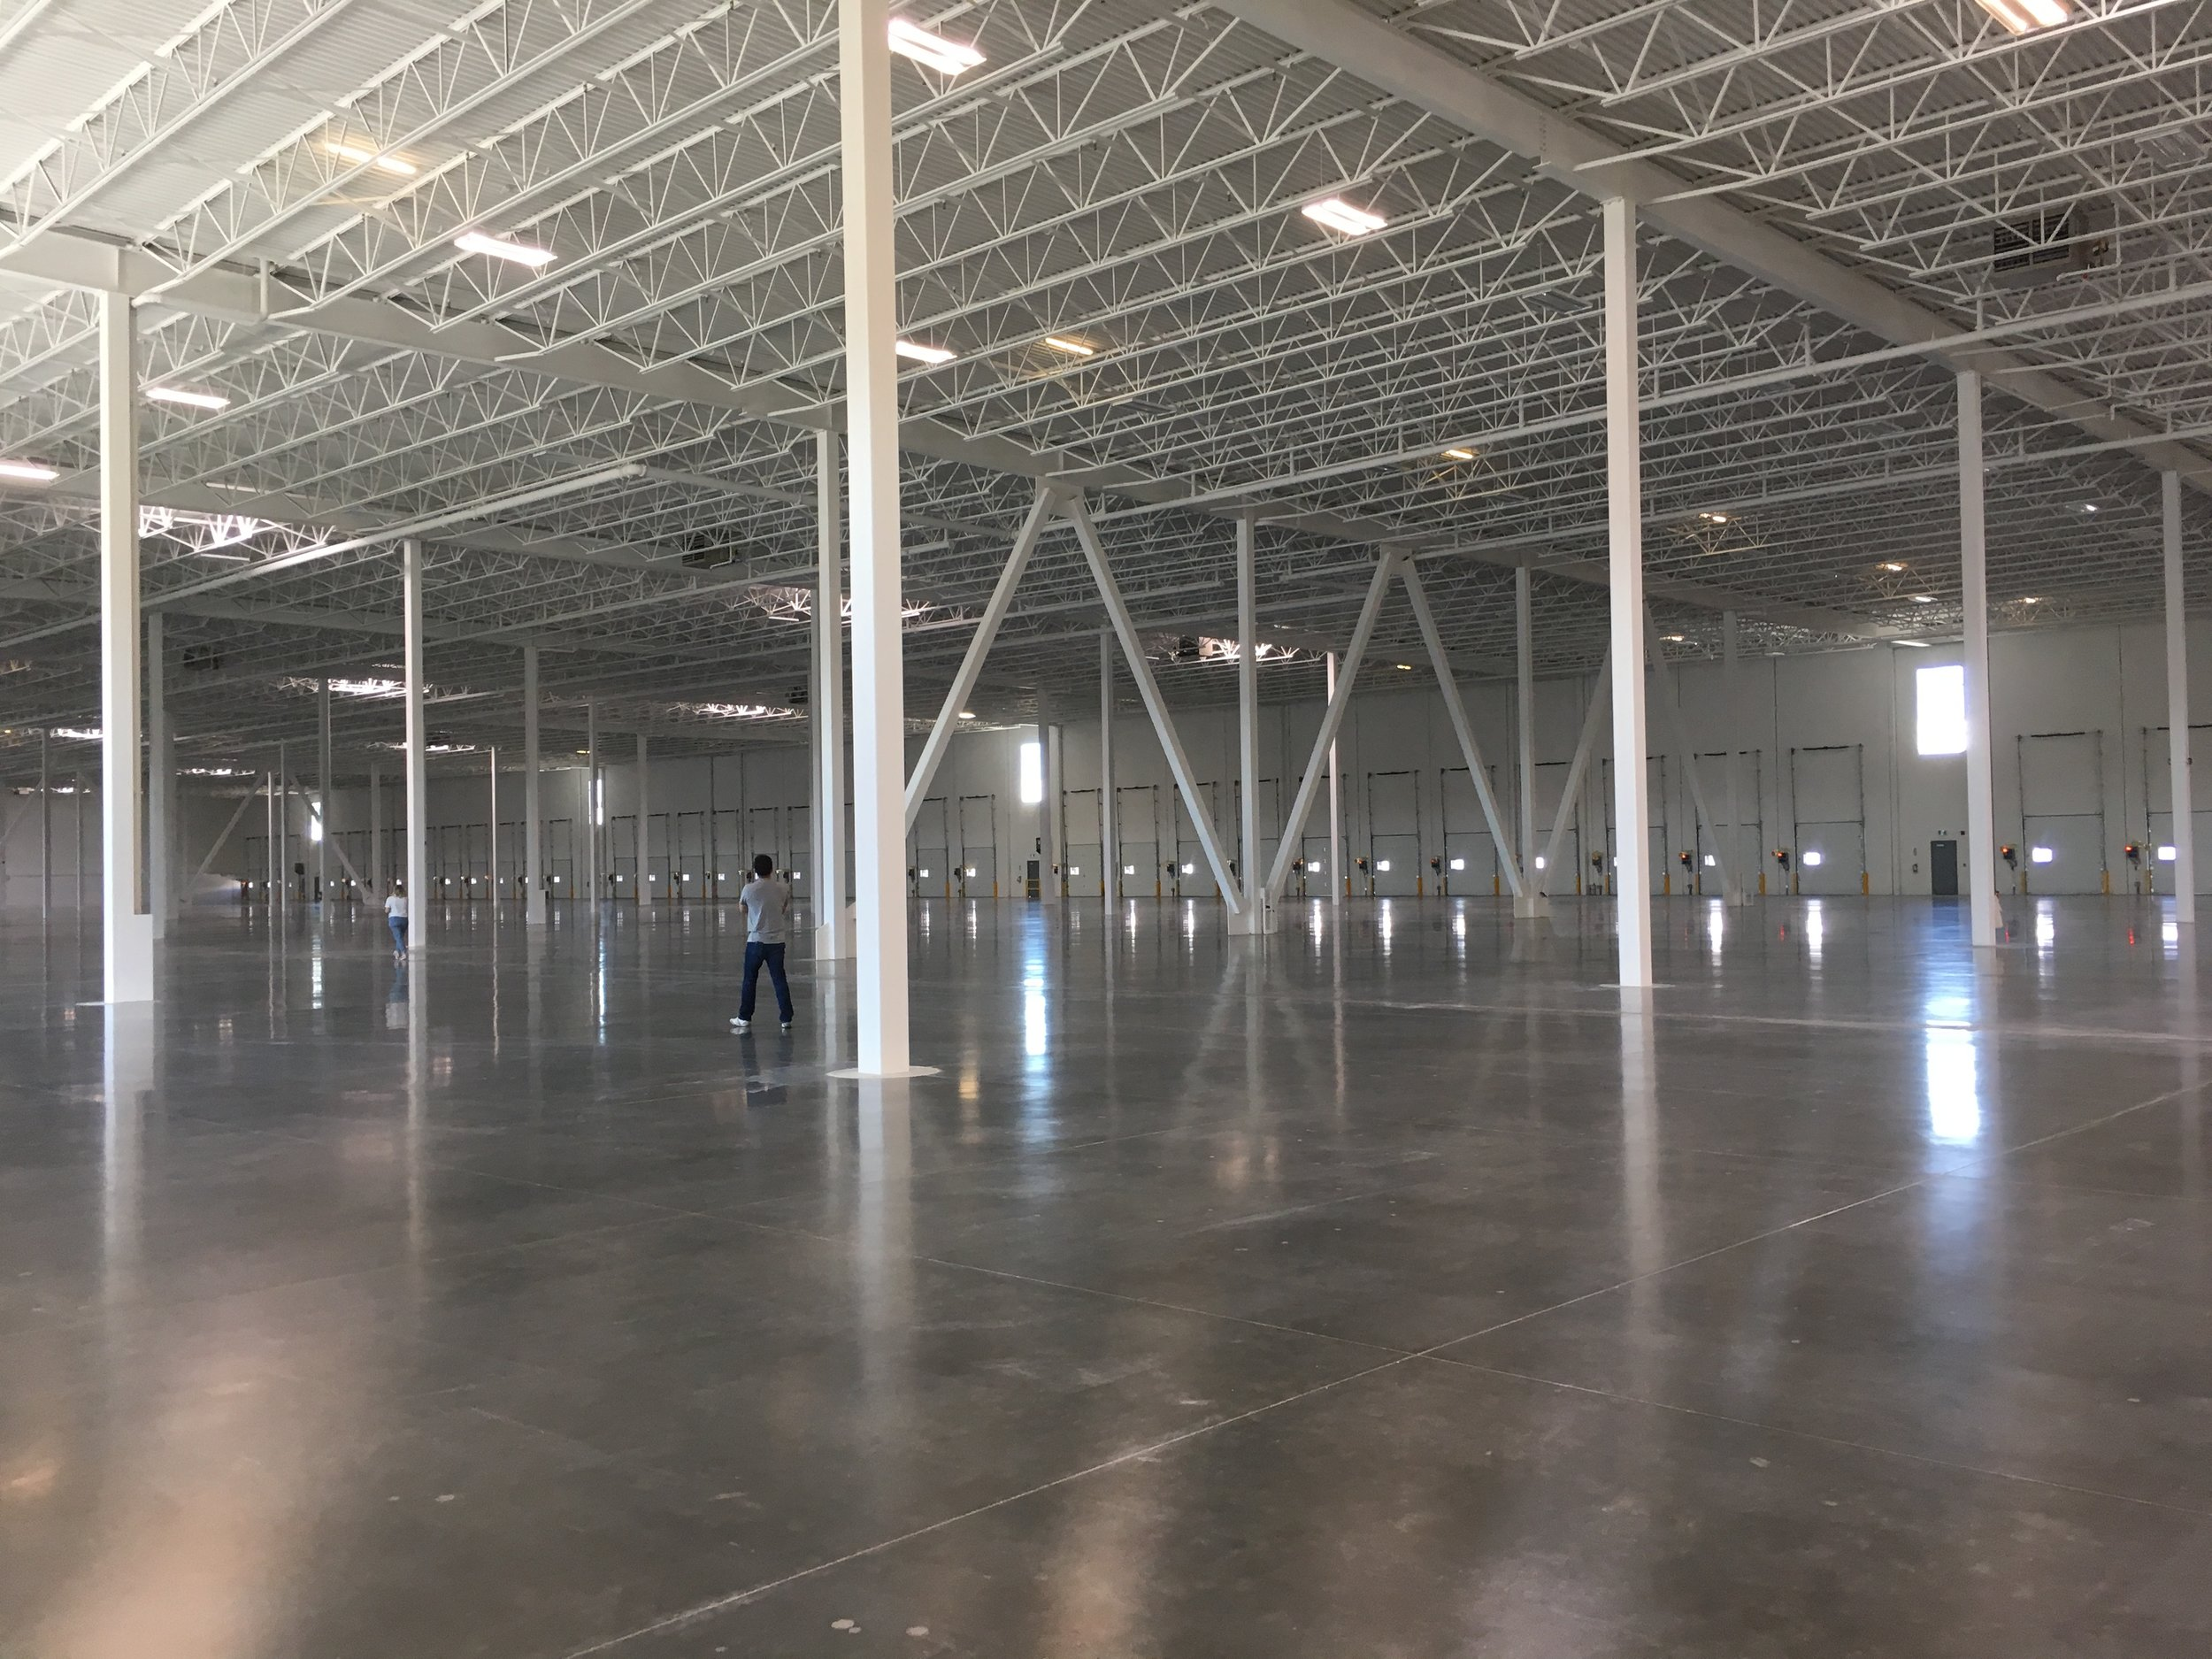 Steel columns break the expanse into a system of future shelving rows.